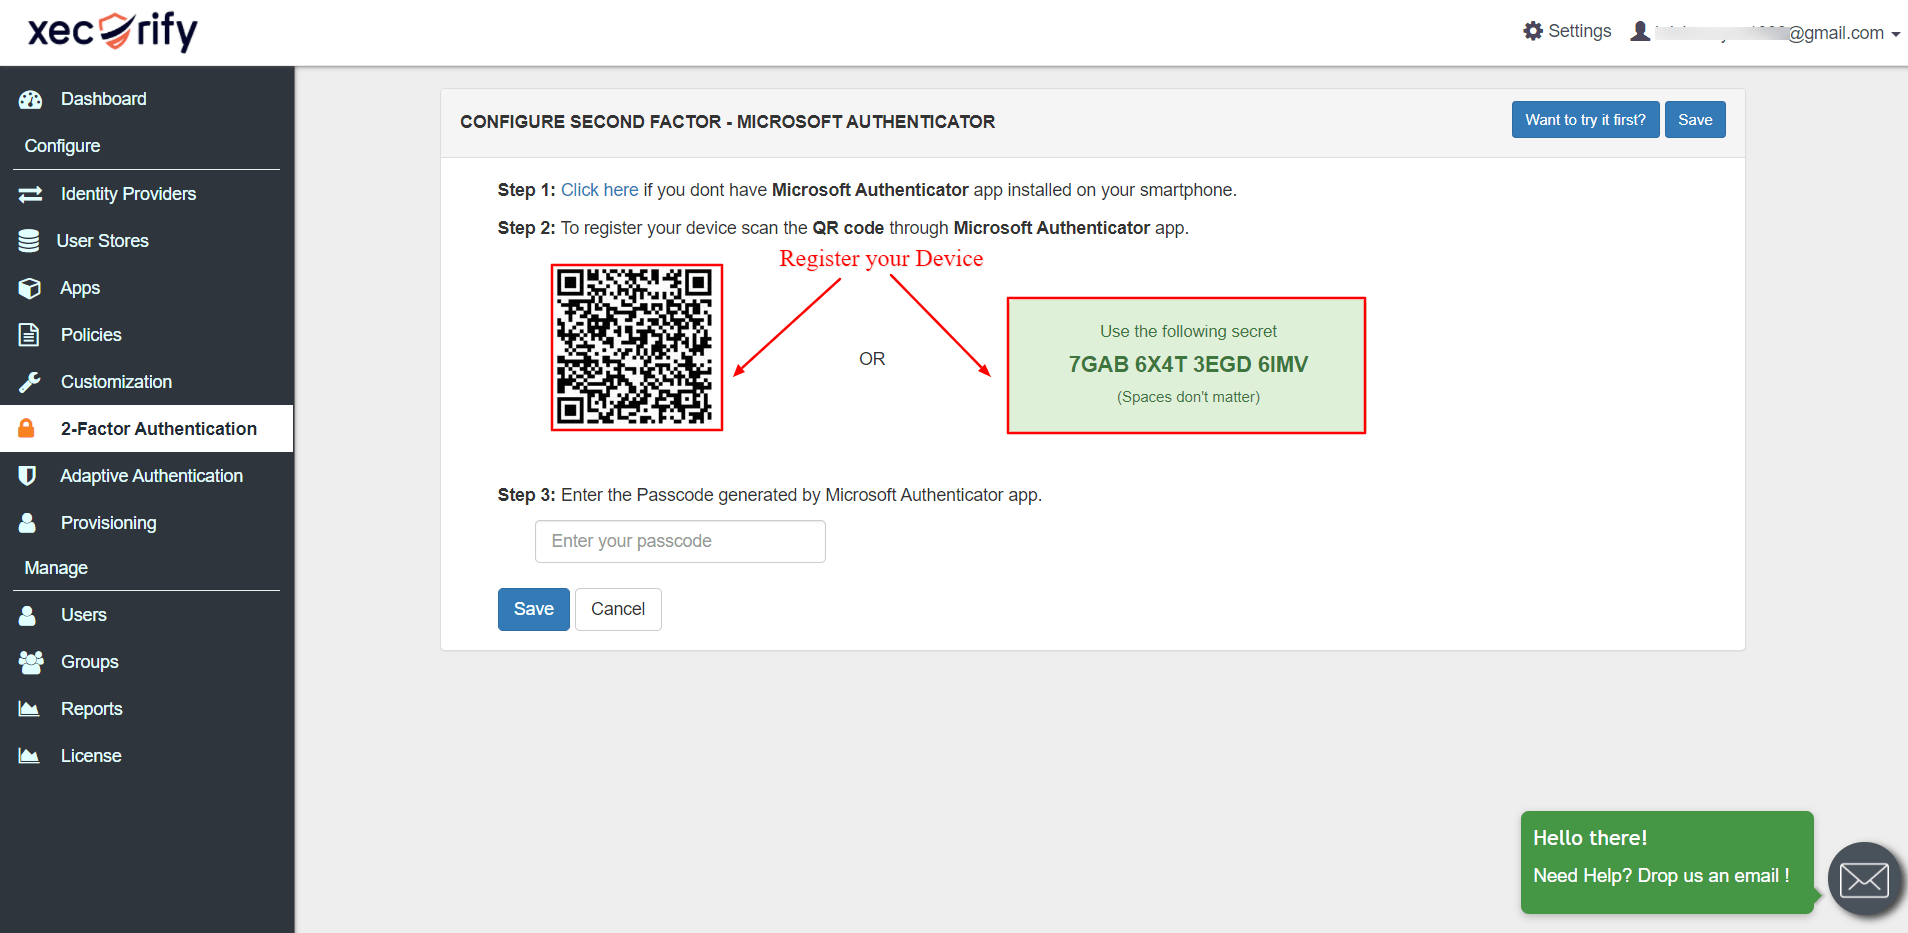 Scan QR code to register device for authentication